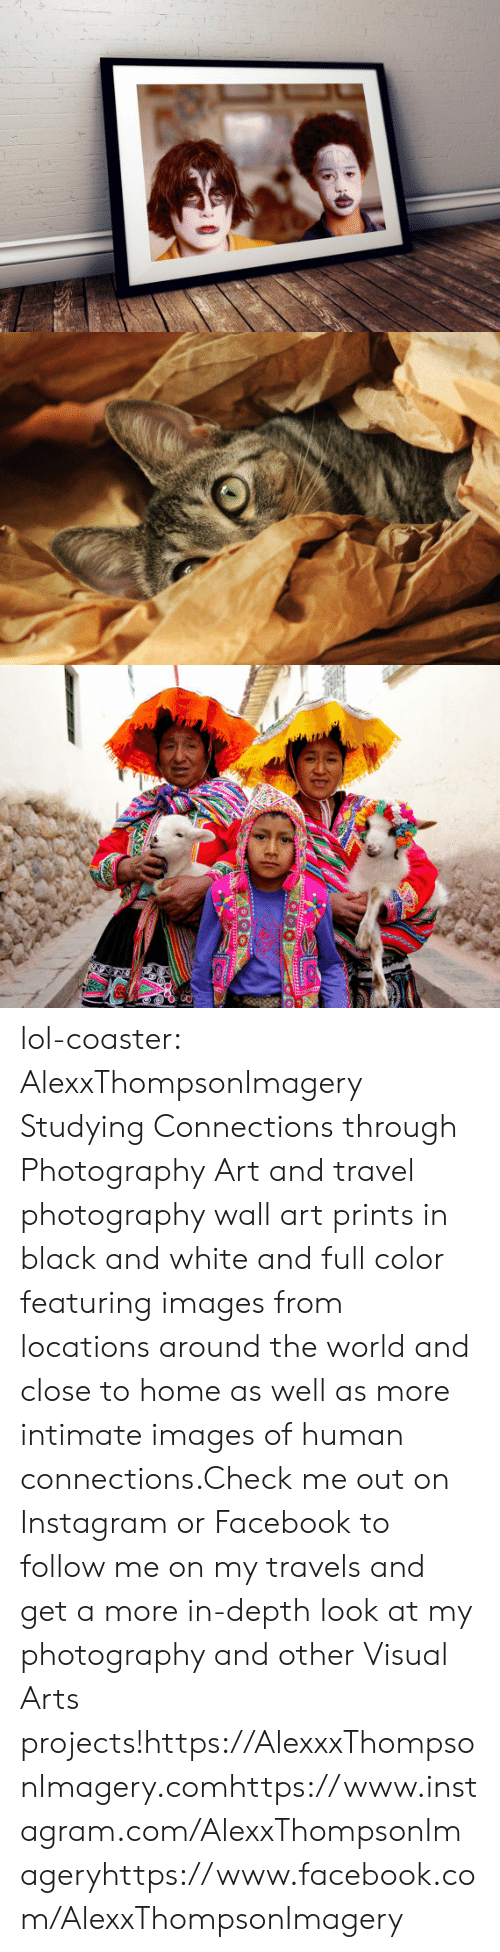 Facebook, Instagram, and Lol: lol-coaster:   AlexxThompsonImagery Studying Connections through Photography     Art and travel photography wall art prints in black and white and full color featuring images from locations around the world and close to home as well as more intimate images of human connections.Check me out on Instagram or Facebook to follow me on my travels and get a more in-depth look at my photography and other Visual Arts projects!https://AlexxxThompsonImagery.comhttps://www.instagram.com/AlexxThompsonImageryhttps://www.facebook.com/AlexxThompsonImagery